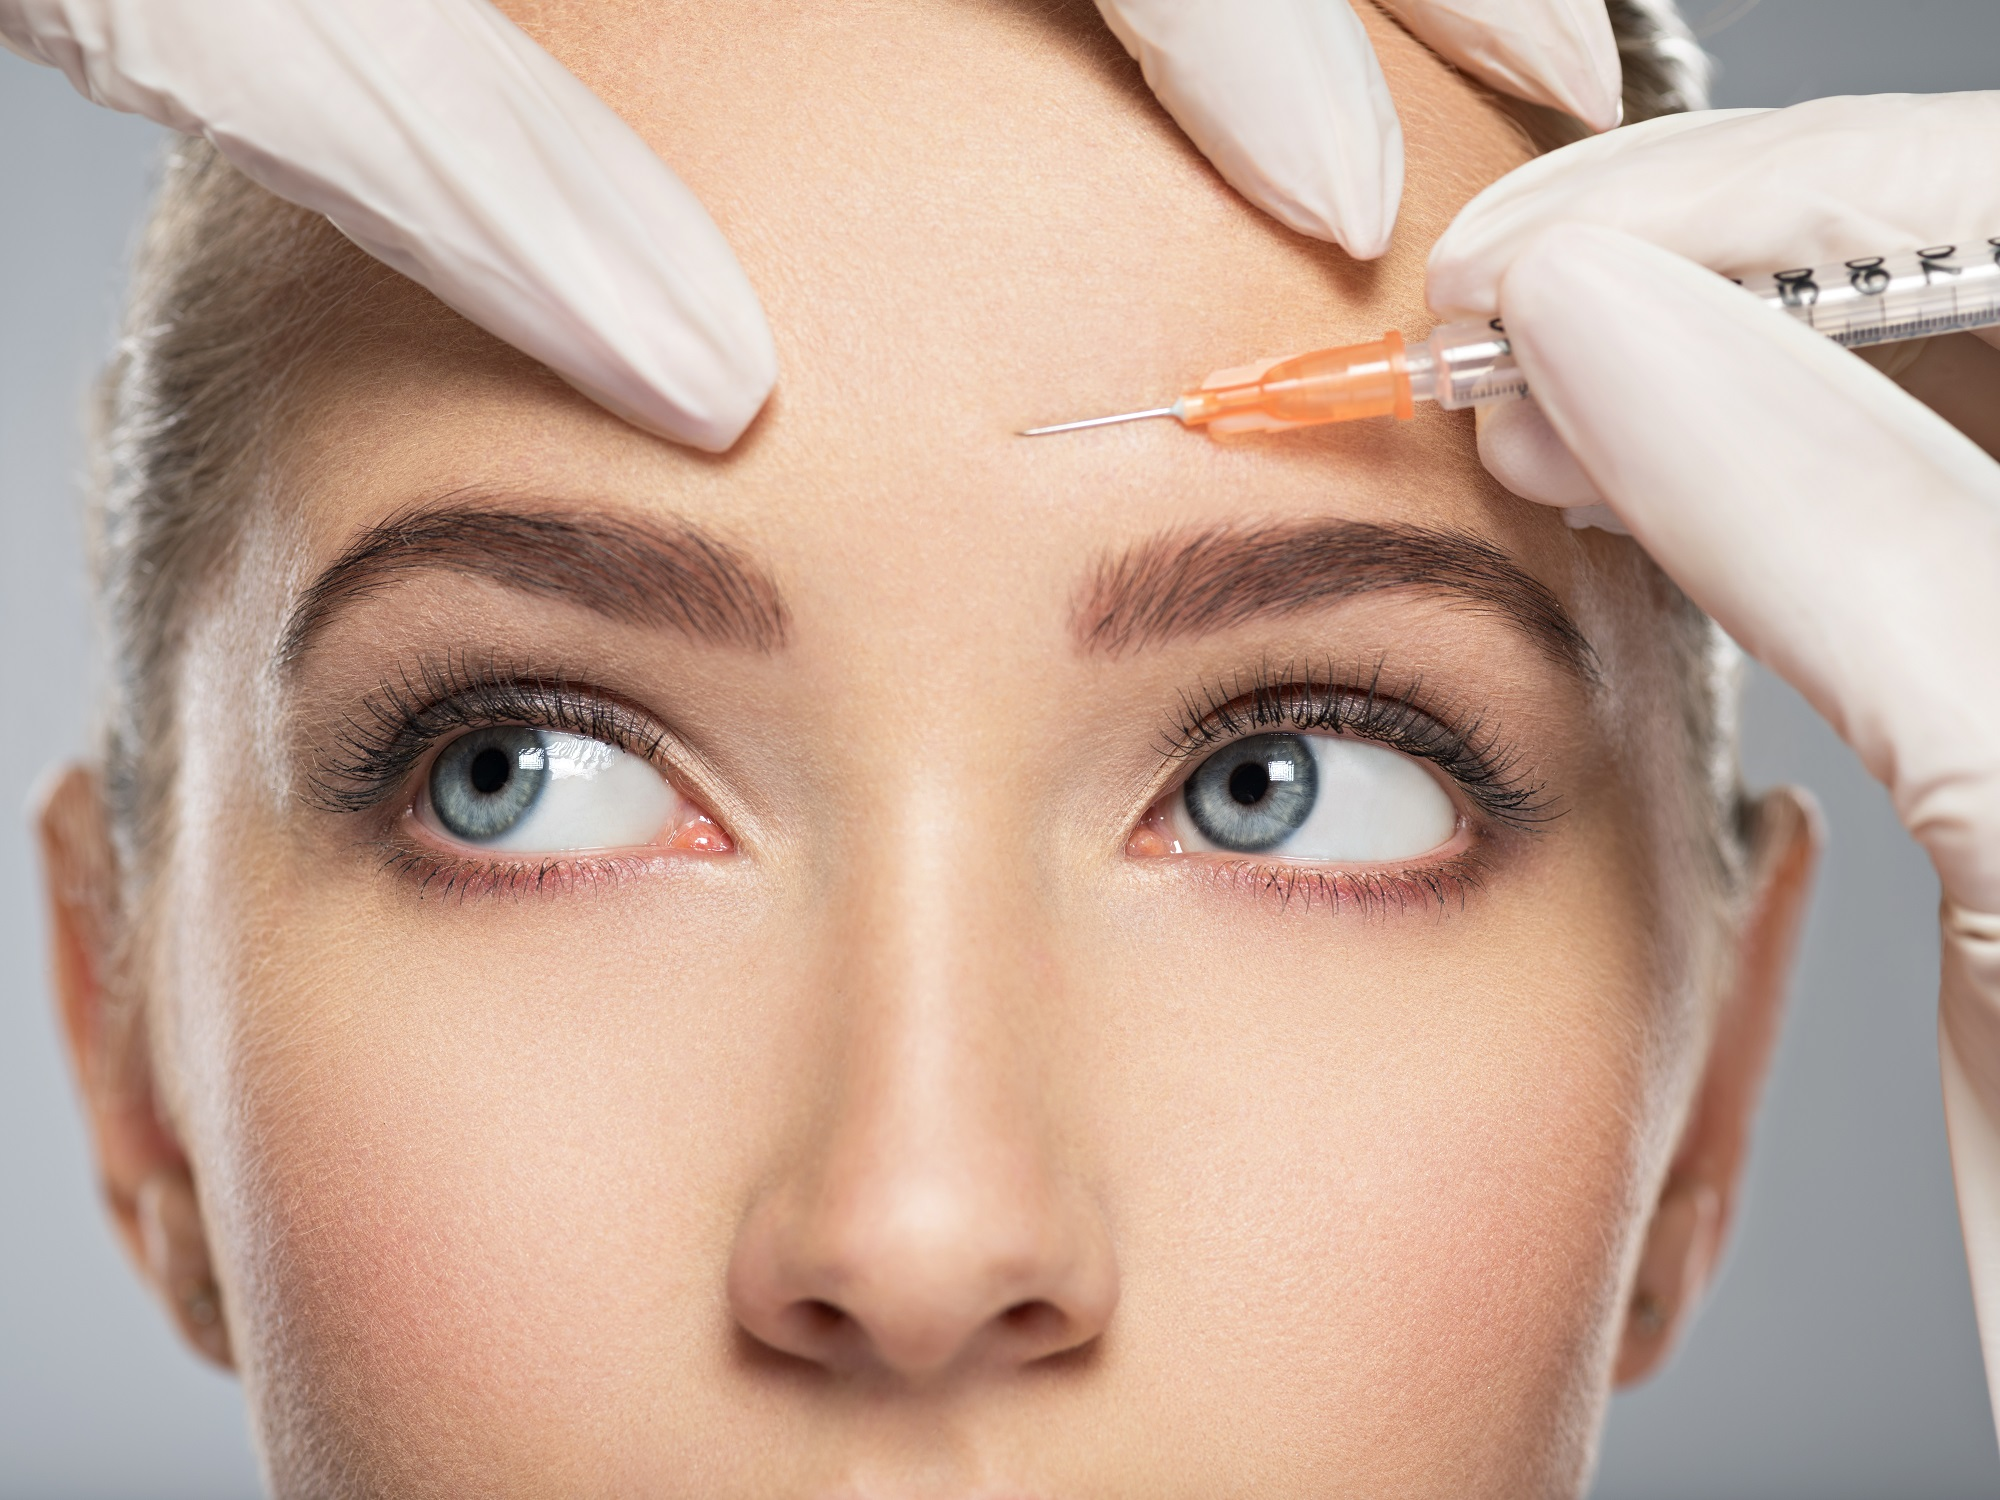 A woman receiving a botox injection in her forehead